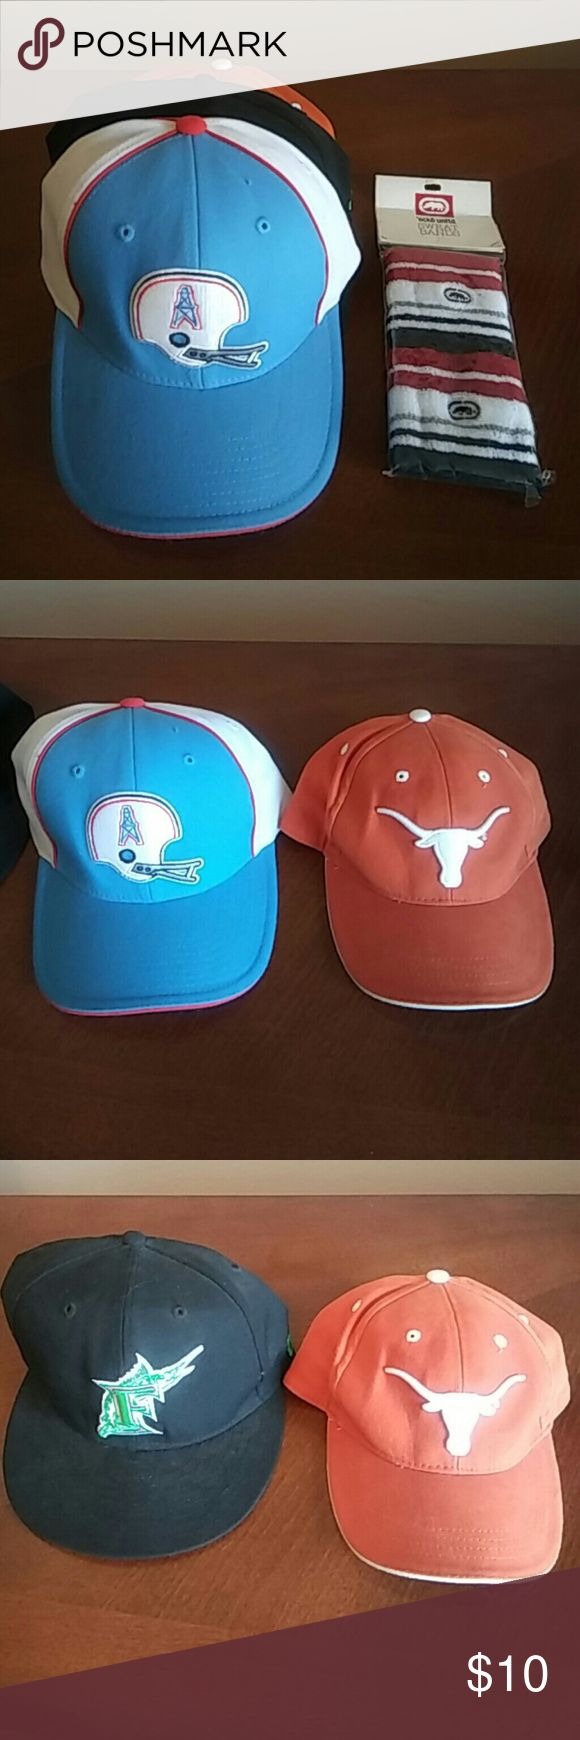 Lot of Hats plus a pack of wrist bands Lot of hats:  Florida Marlins, Houston Oilers, Texas Long Horn and an unopened pack of ecko sweat bands Accessories Hats